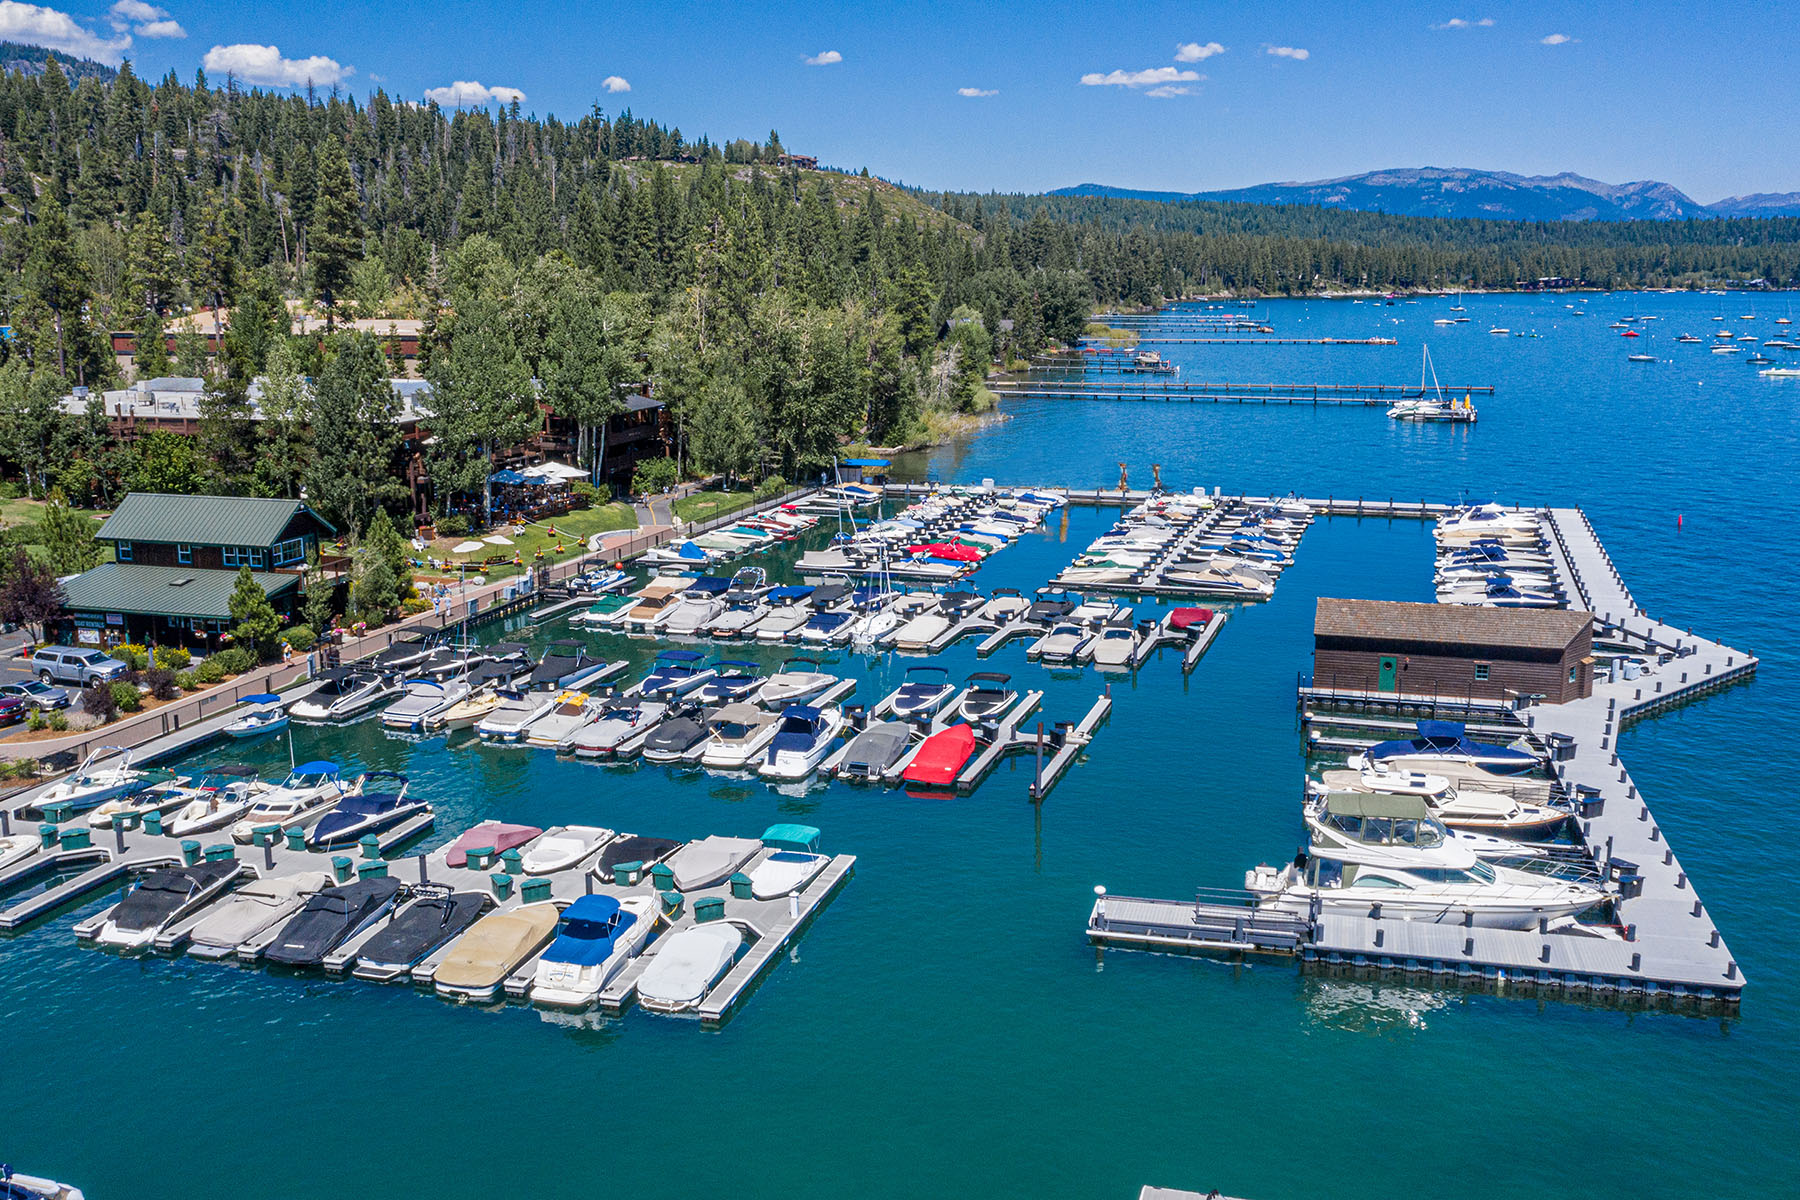 en 700 N Lake Blvd #E-16, Tahoe City, Californie ,96145  , États-Unis